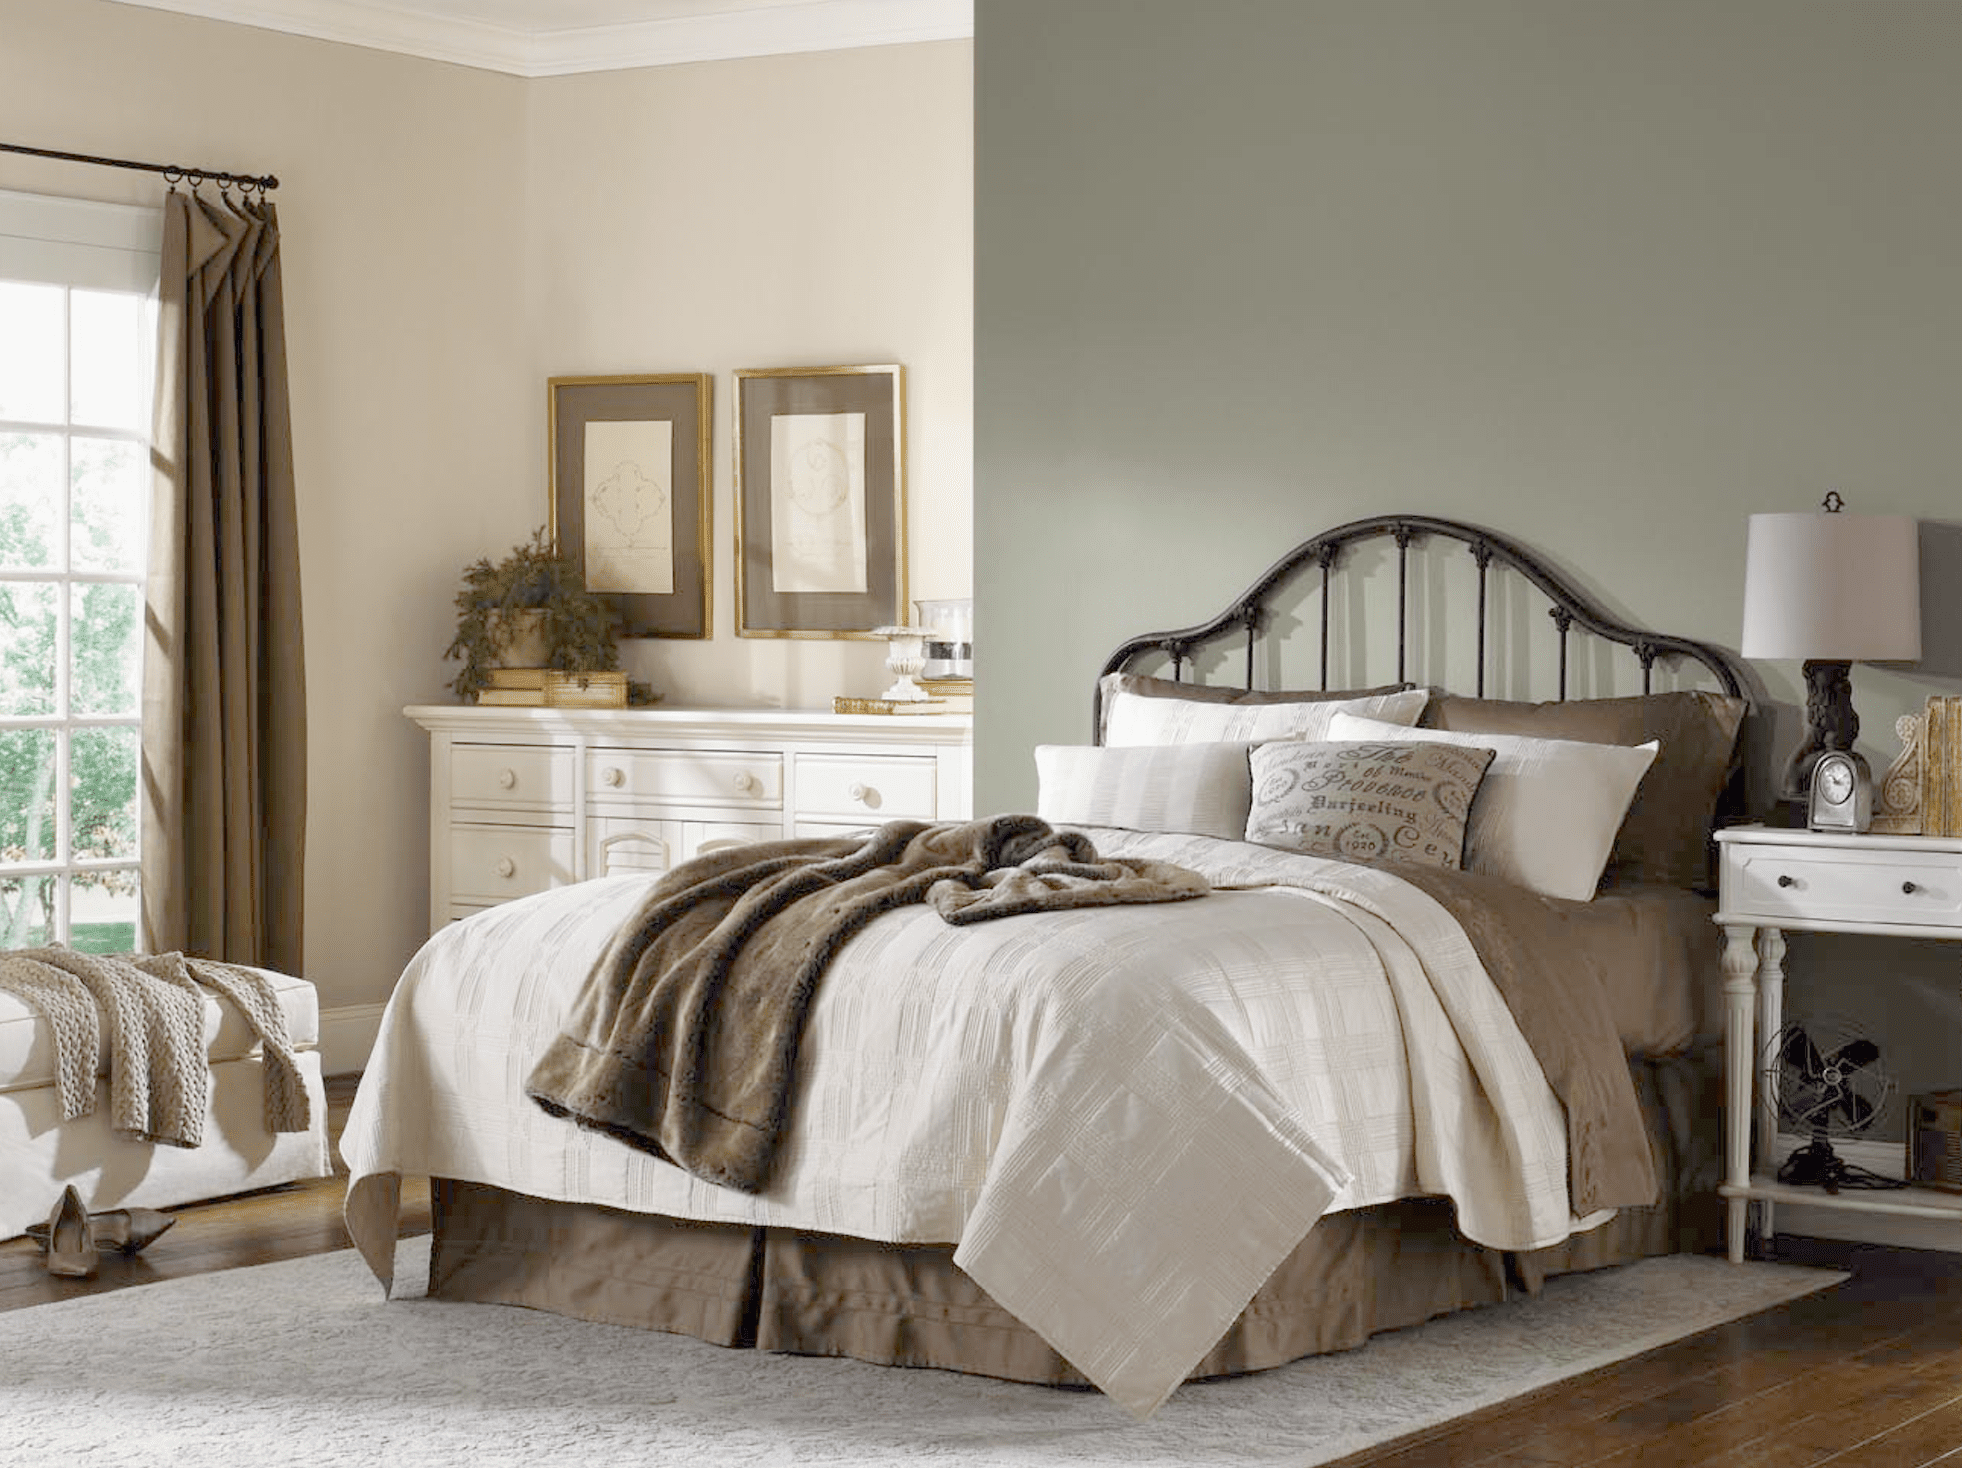 8 Relaxing Sherwin Williams Paint Colors for Bedrooms. The Best Relaxing Bedroom Paint Colors